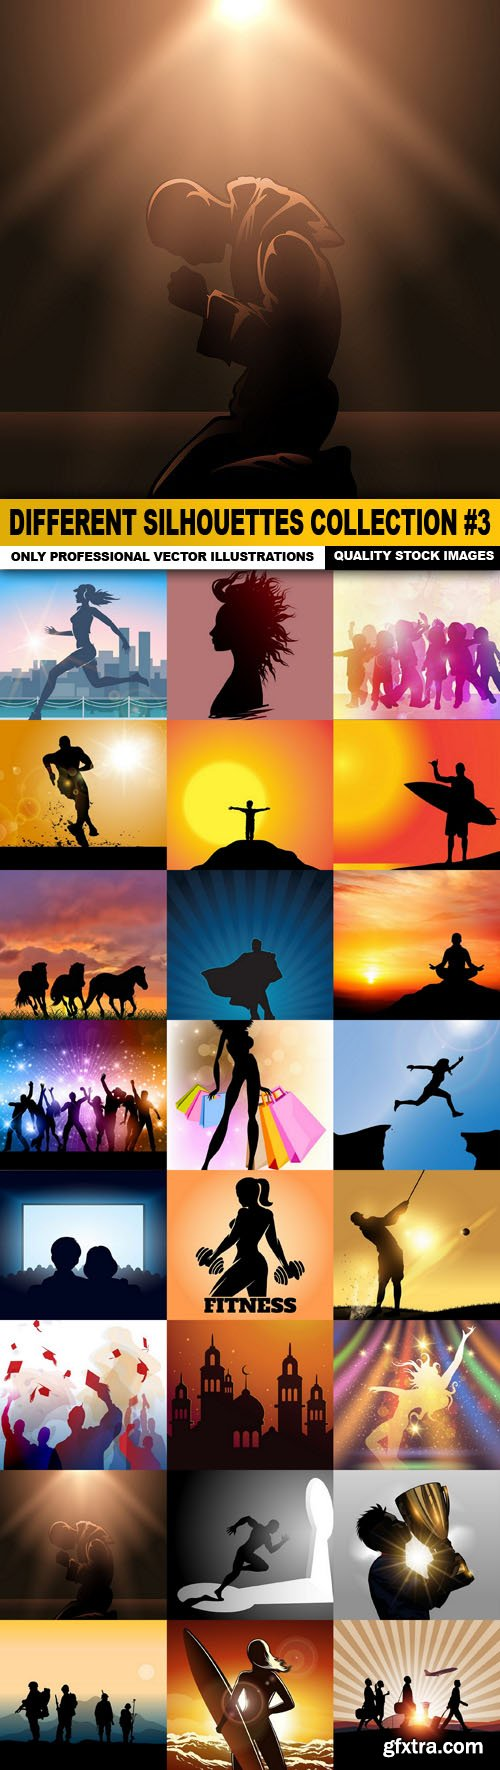 Different Silhouettes Collection #3 - 25 Vector